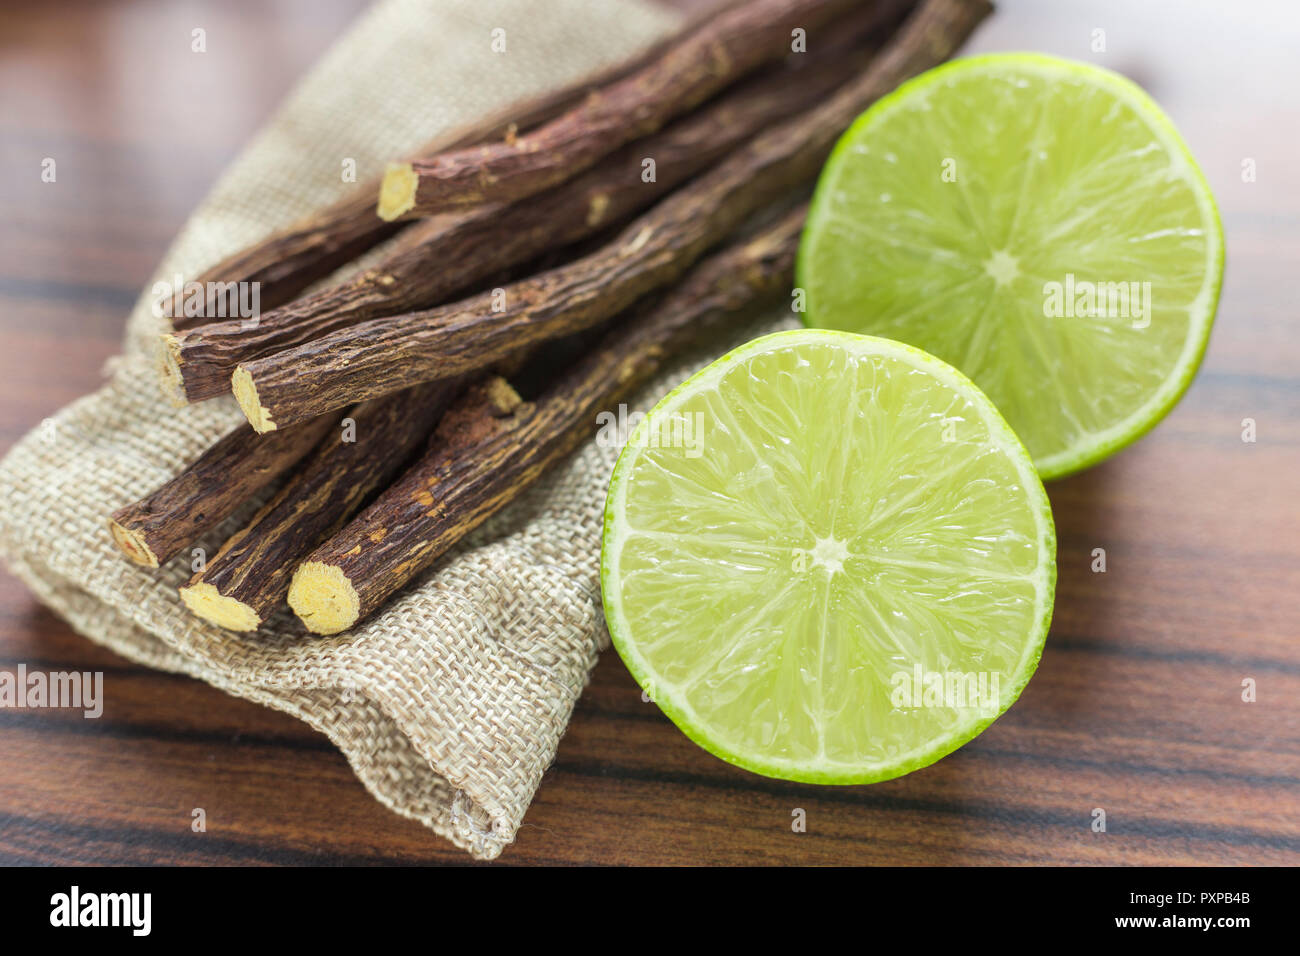 licorice root and lemon on the table - Stock Image